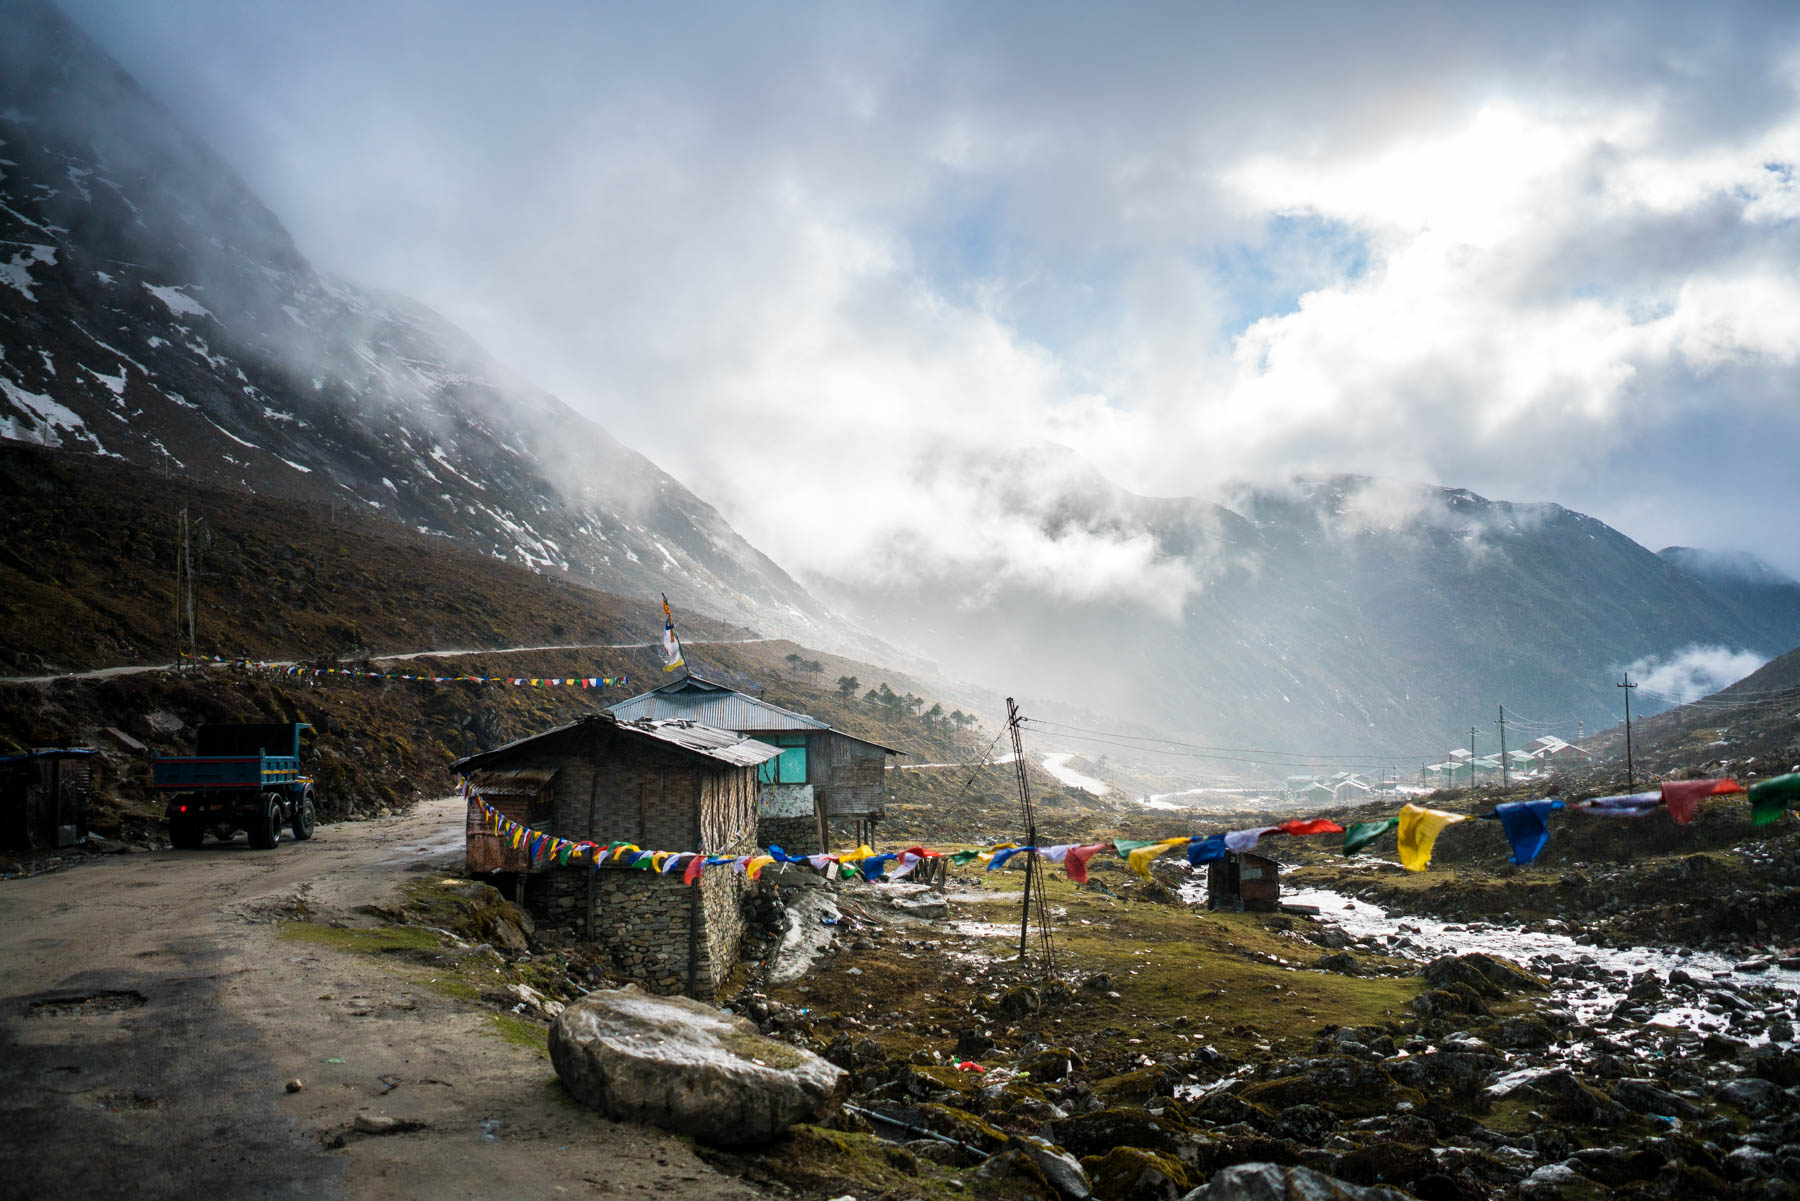 Backpacking Arunachal Pradesh travel guide - A stopover after Sela Pass on the road to Tawang - Lost With Purpose